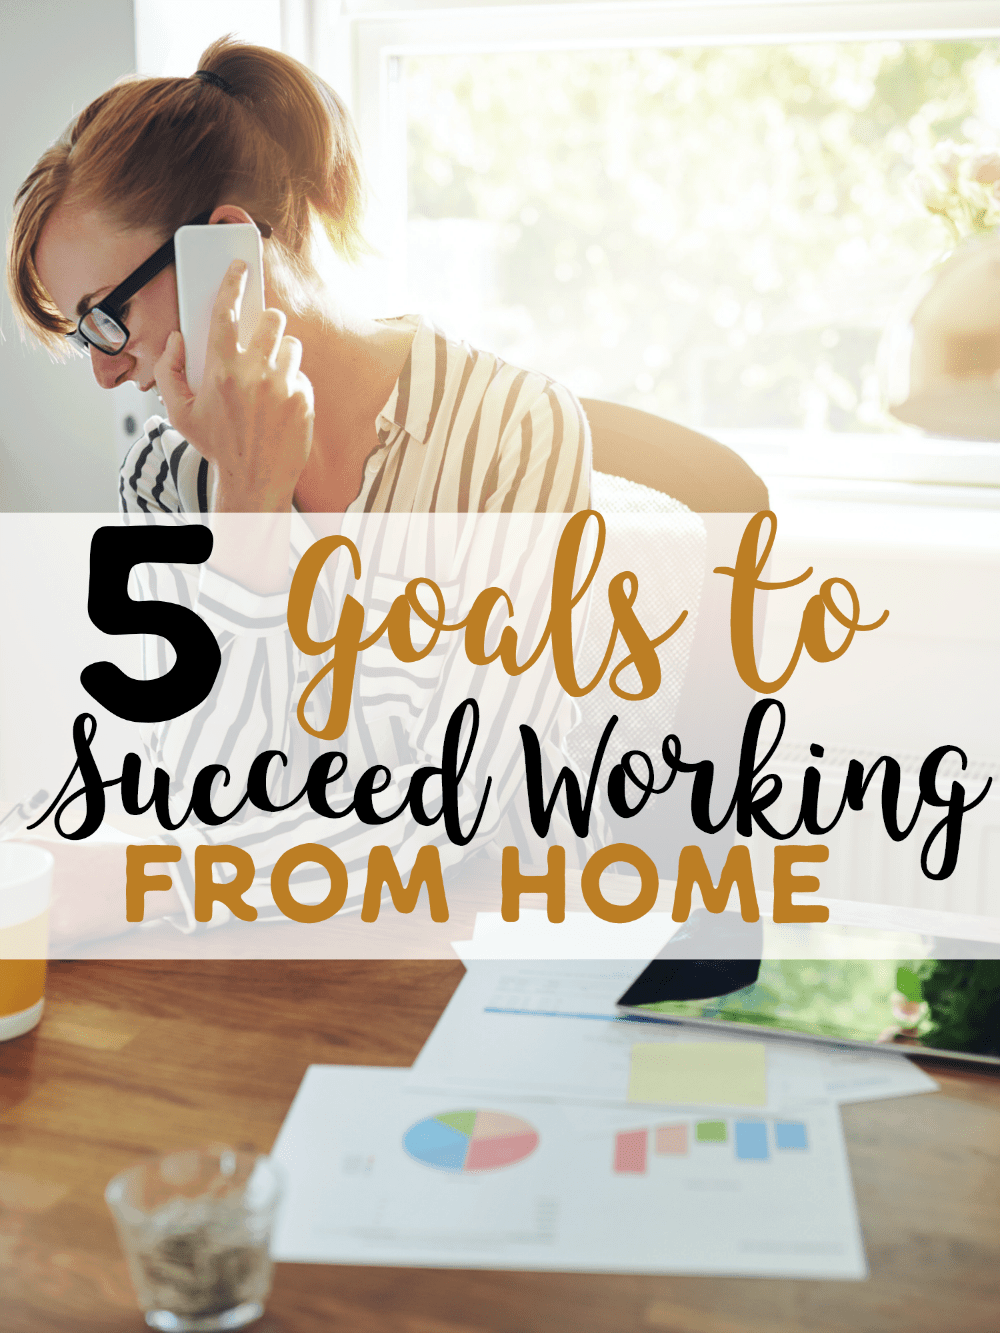 5 Goals to Succeed Working From Home